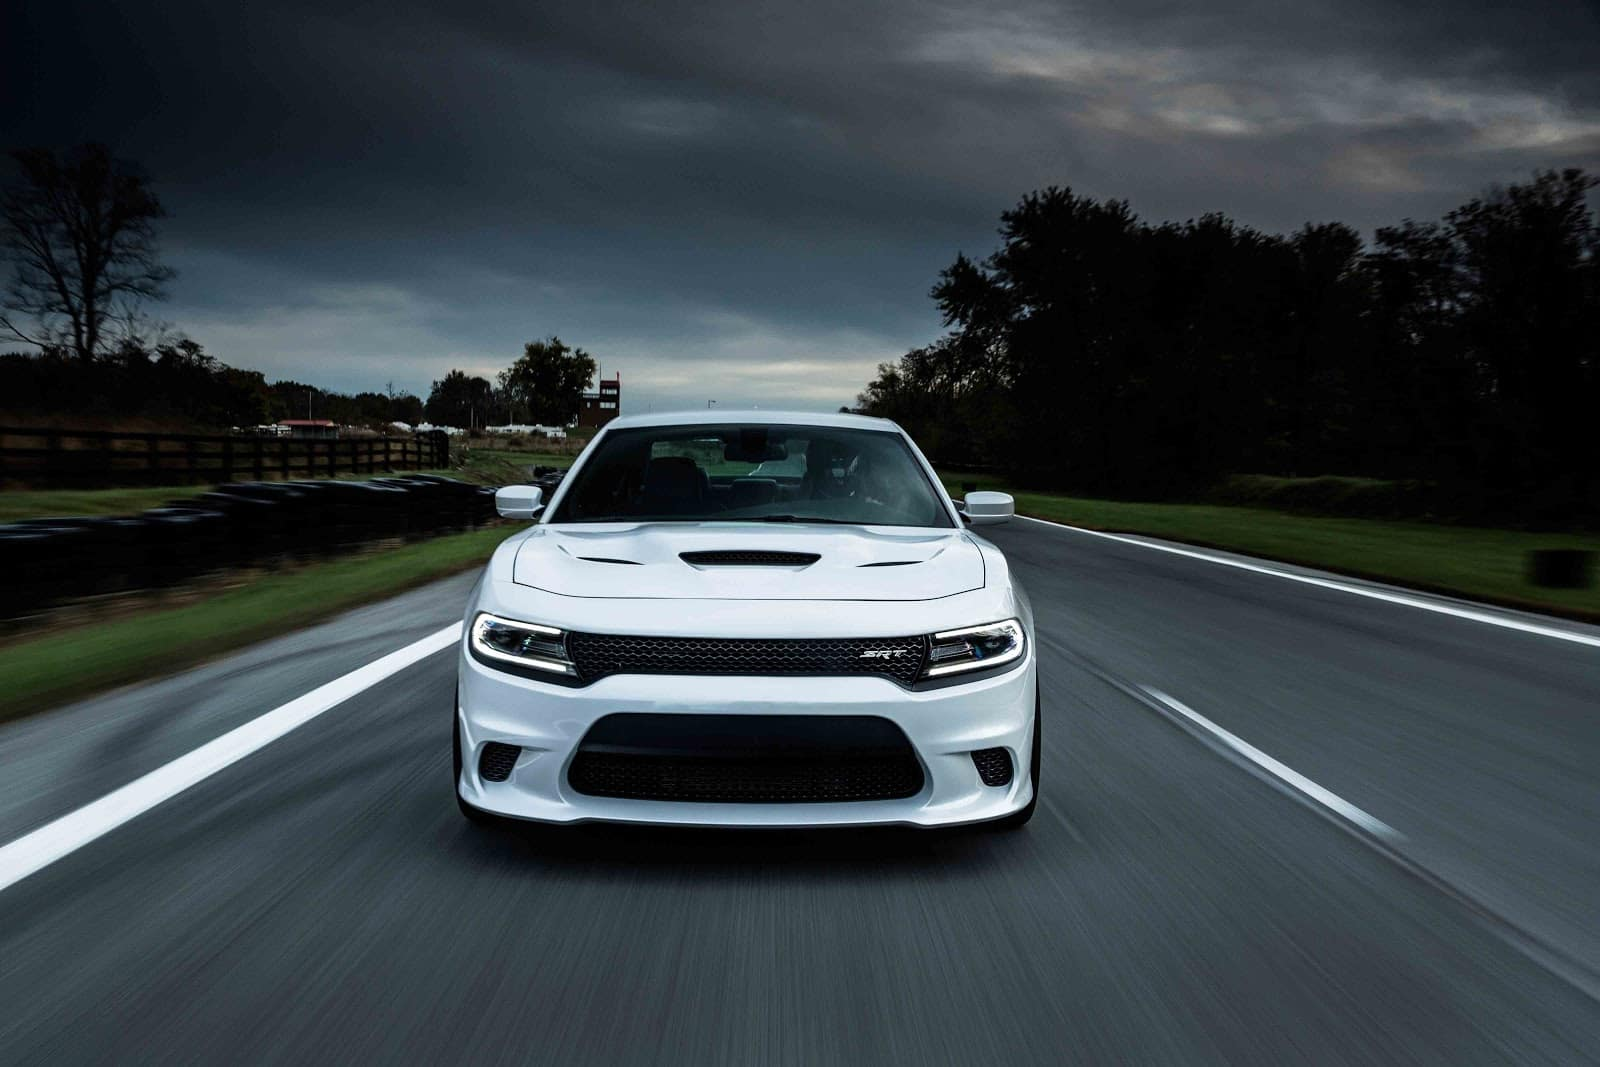 white 2019 dodge charger driving down highway